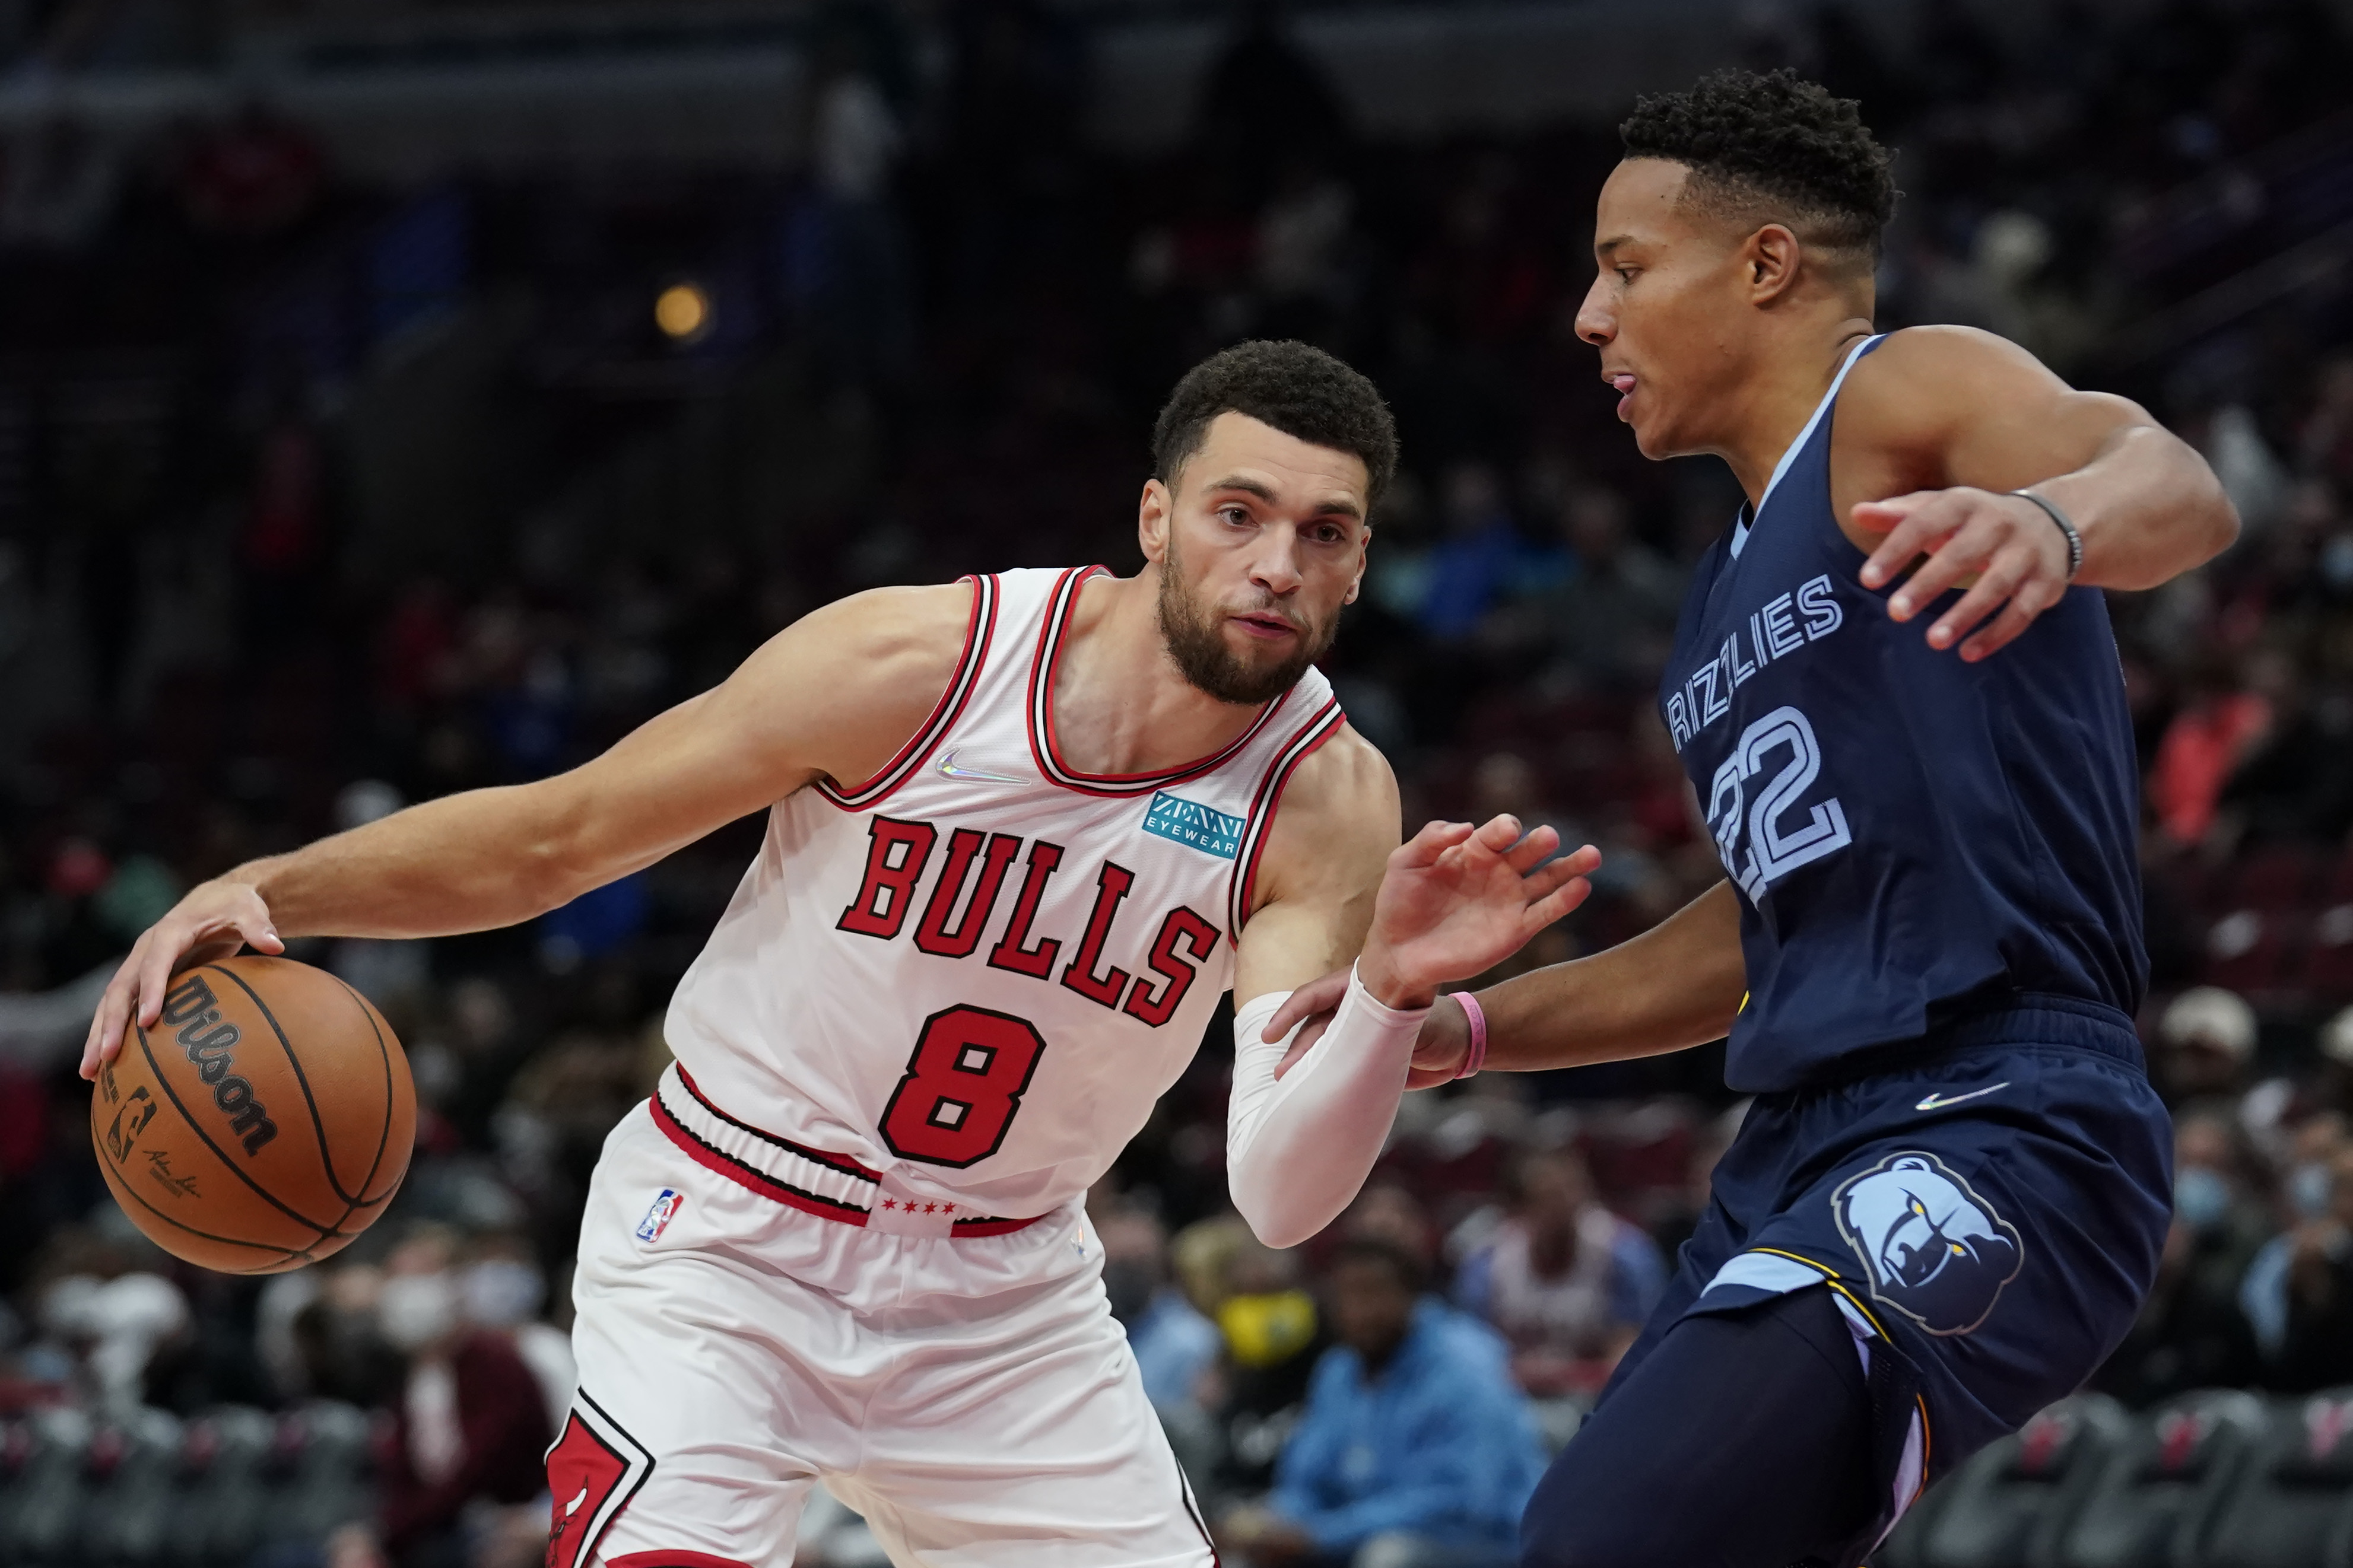 Zach LaVine #8 of the Chicago Bulls dribbles the ball against Desmond Bane #22 of the Memphis Grizzlies in the first half during a preseason game at United Center on October 15, 2021 in Chicago, Illinois.